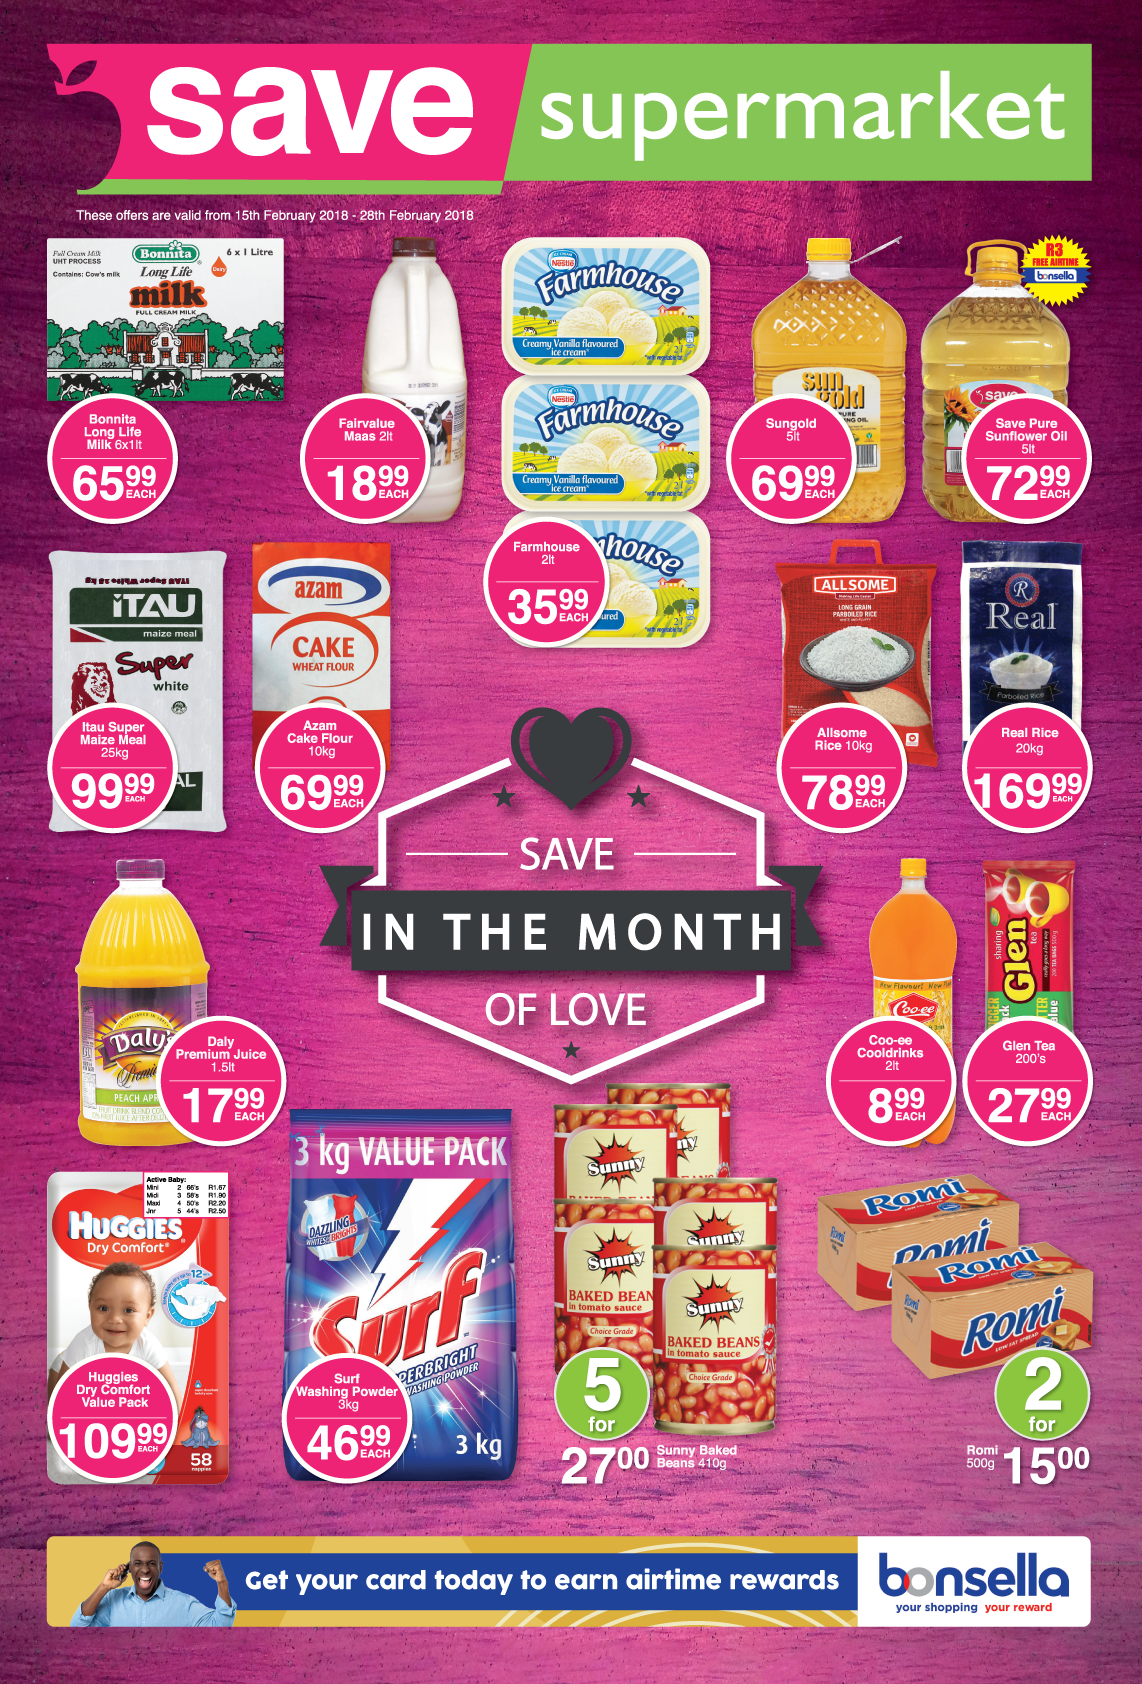 Save Supermarket Howick/Dalton Specials - until 28th February 2018